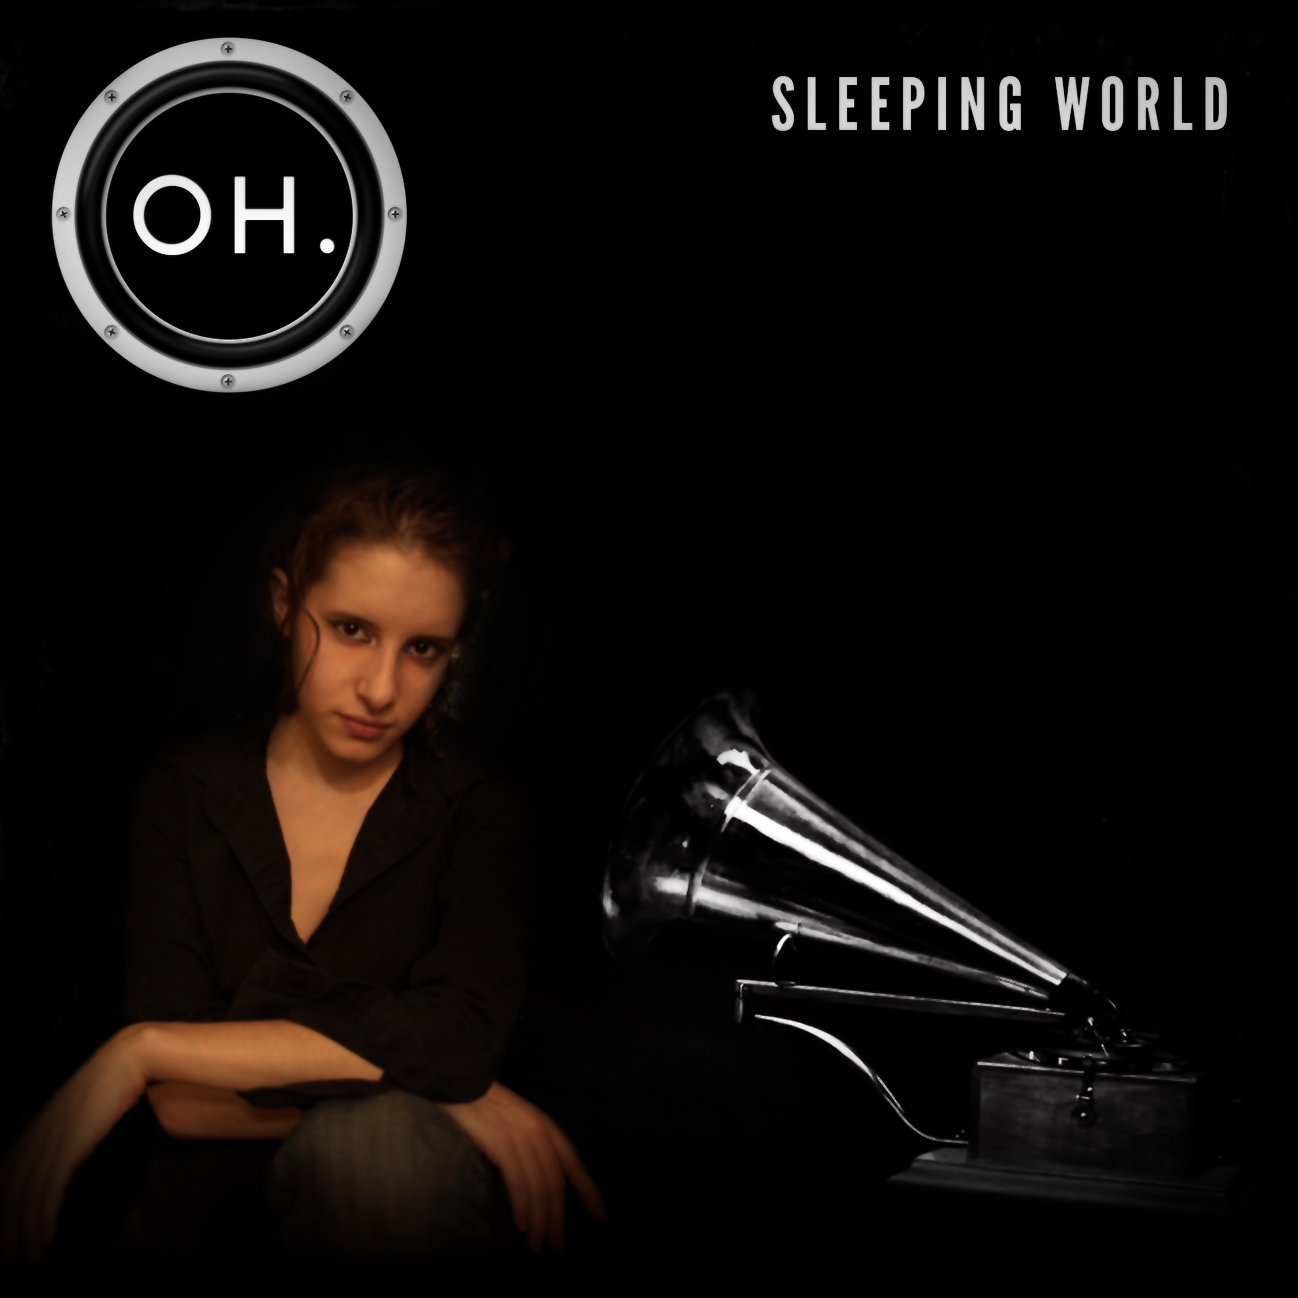 OH. - Sleeping World